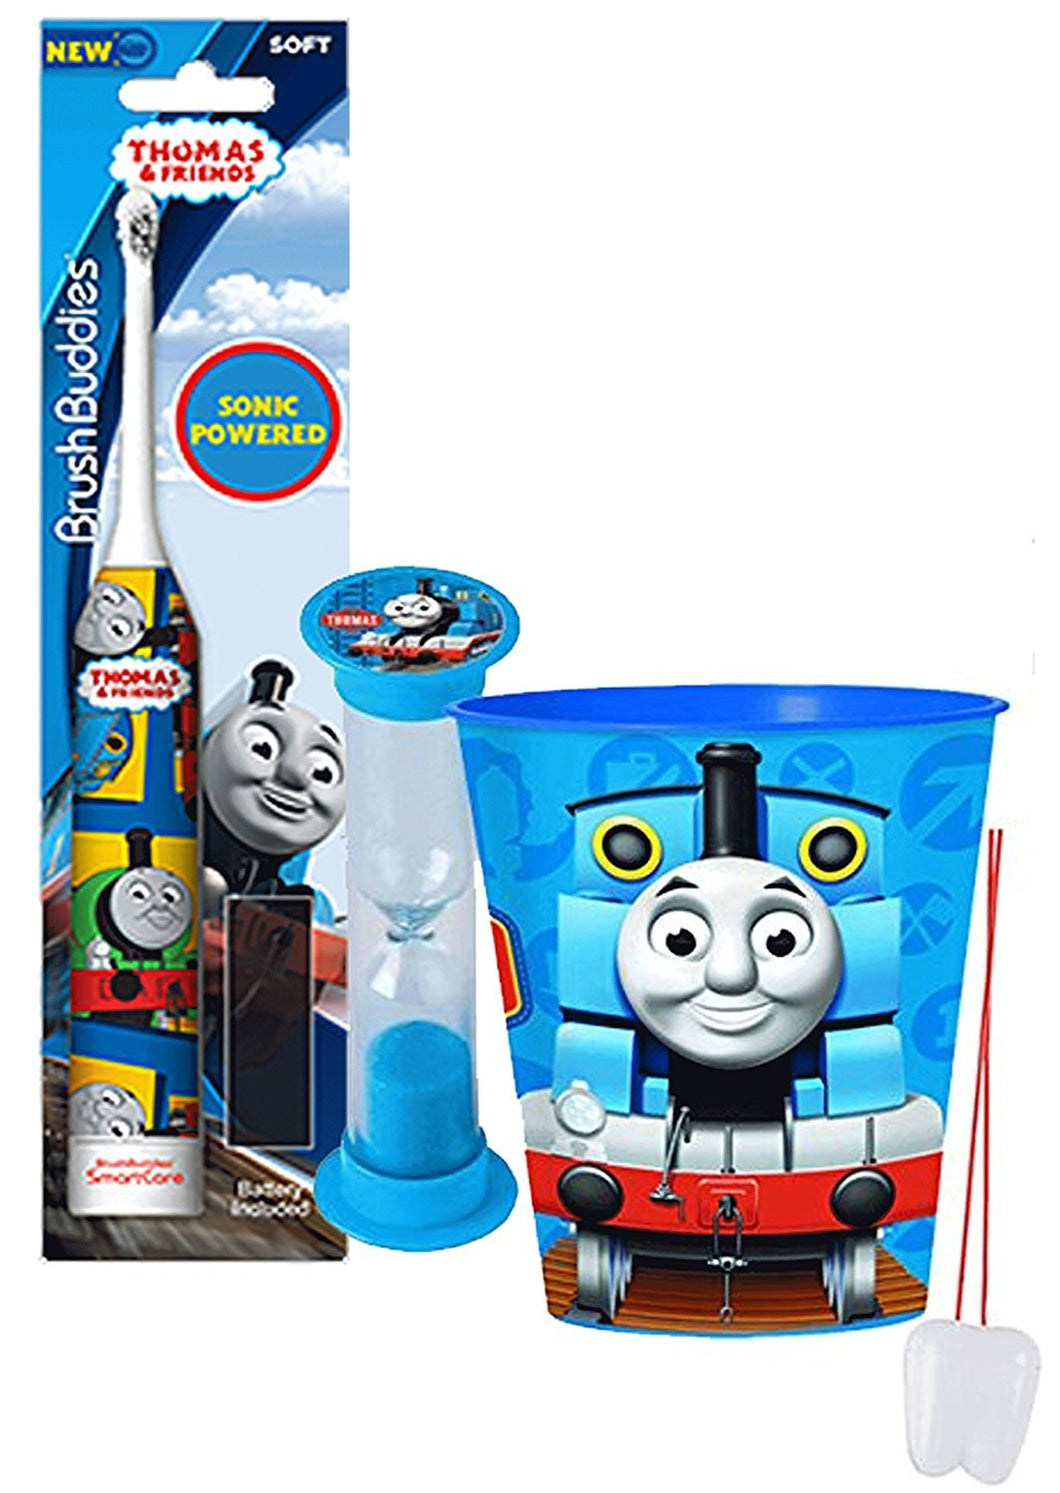 """Thomas the Train"" Inspired 3pc Bright Smile Oral Hygiene Set! Thomas and Friends Turbo Powered Spin Toothbrush, Brushing Timer and Mouthwash Rinse Cup! Plus Bonus ""Remember To Brush"" Visual Aid!"